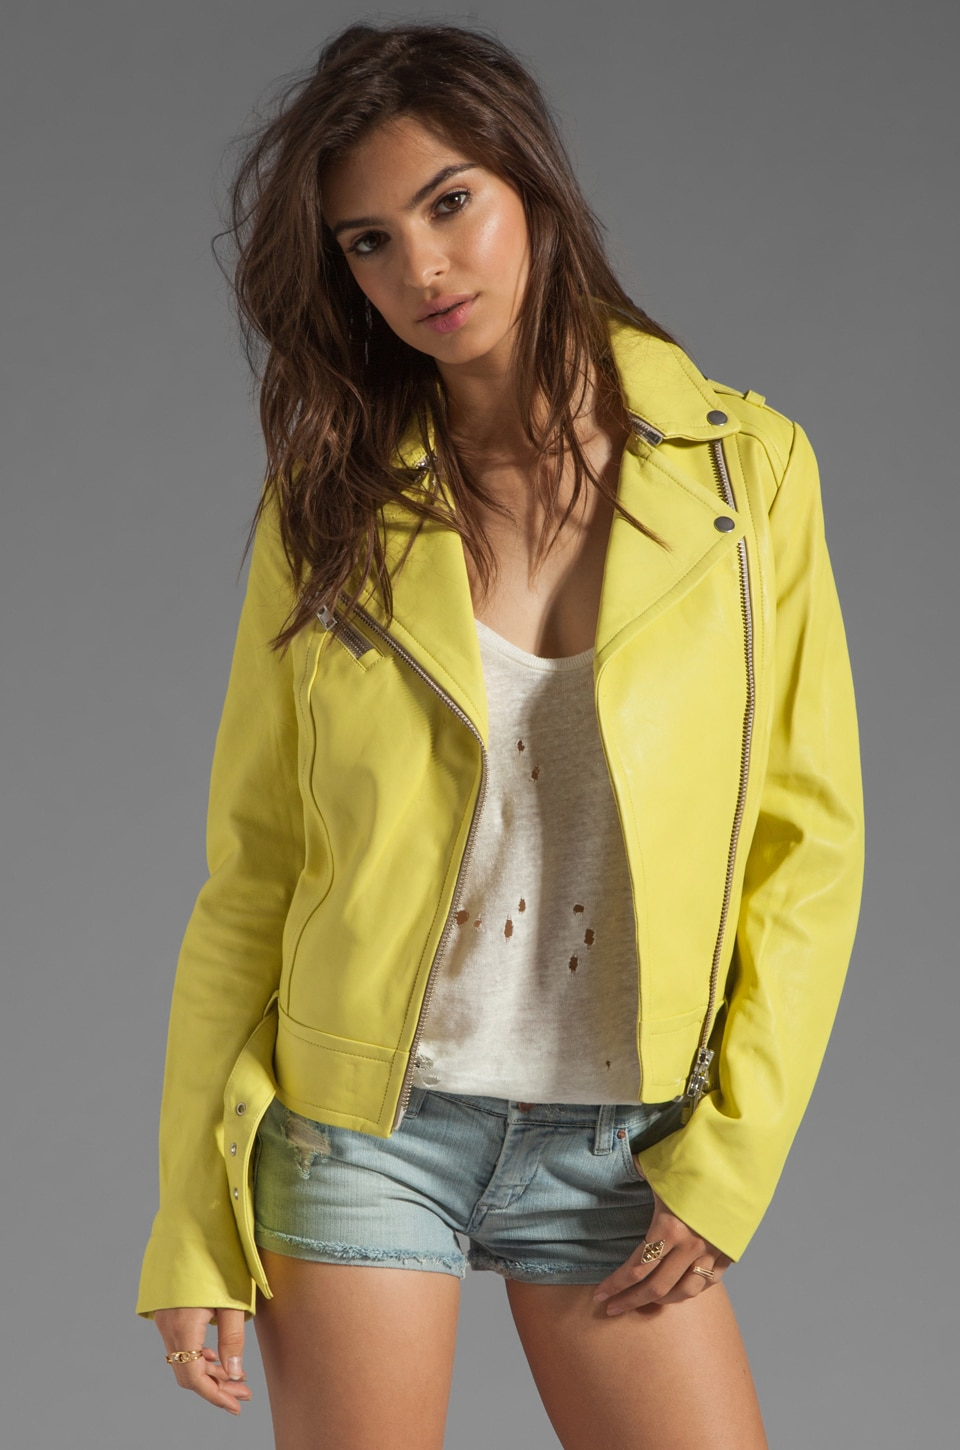 Mackage Hidi Distressed Leather Jacket in Neon Yellow